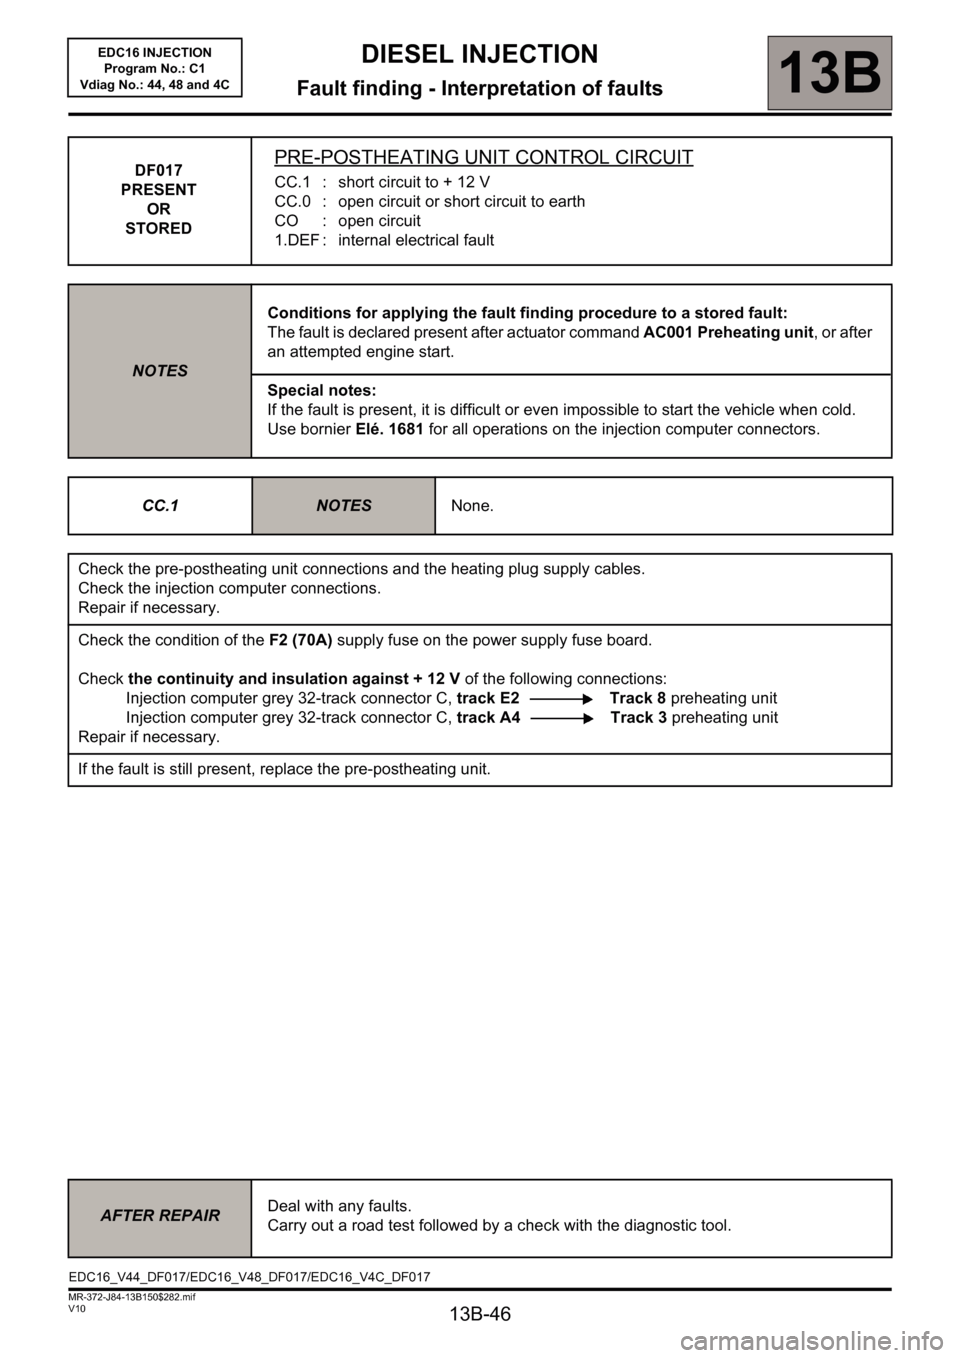 RENAULT SCENIC 2011 J95 / 3.G Engine And Peripherals EDC16 Injection Workshop Manual, Page 46